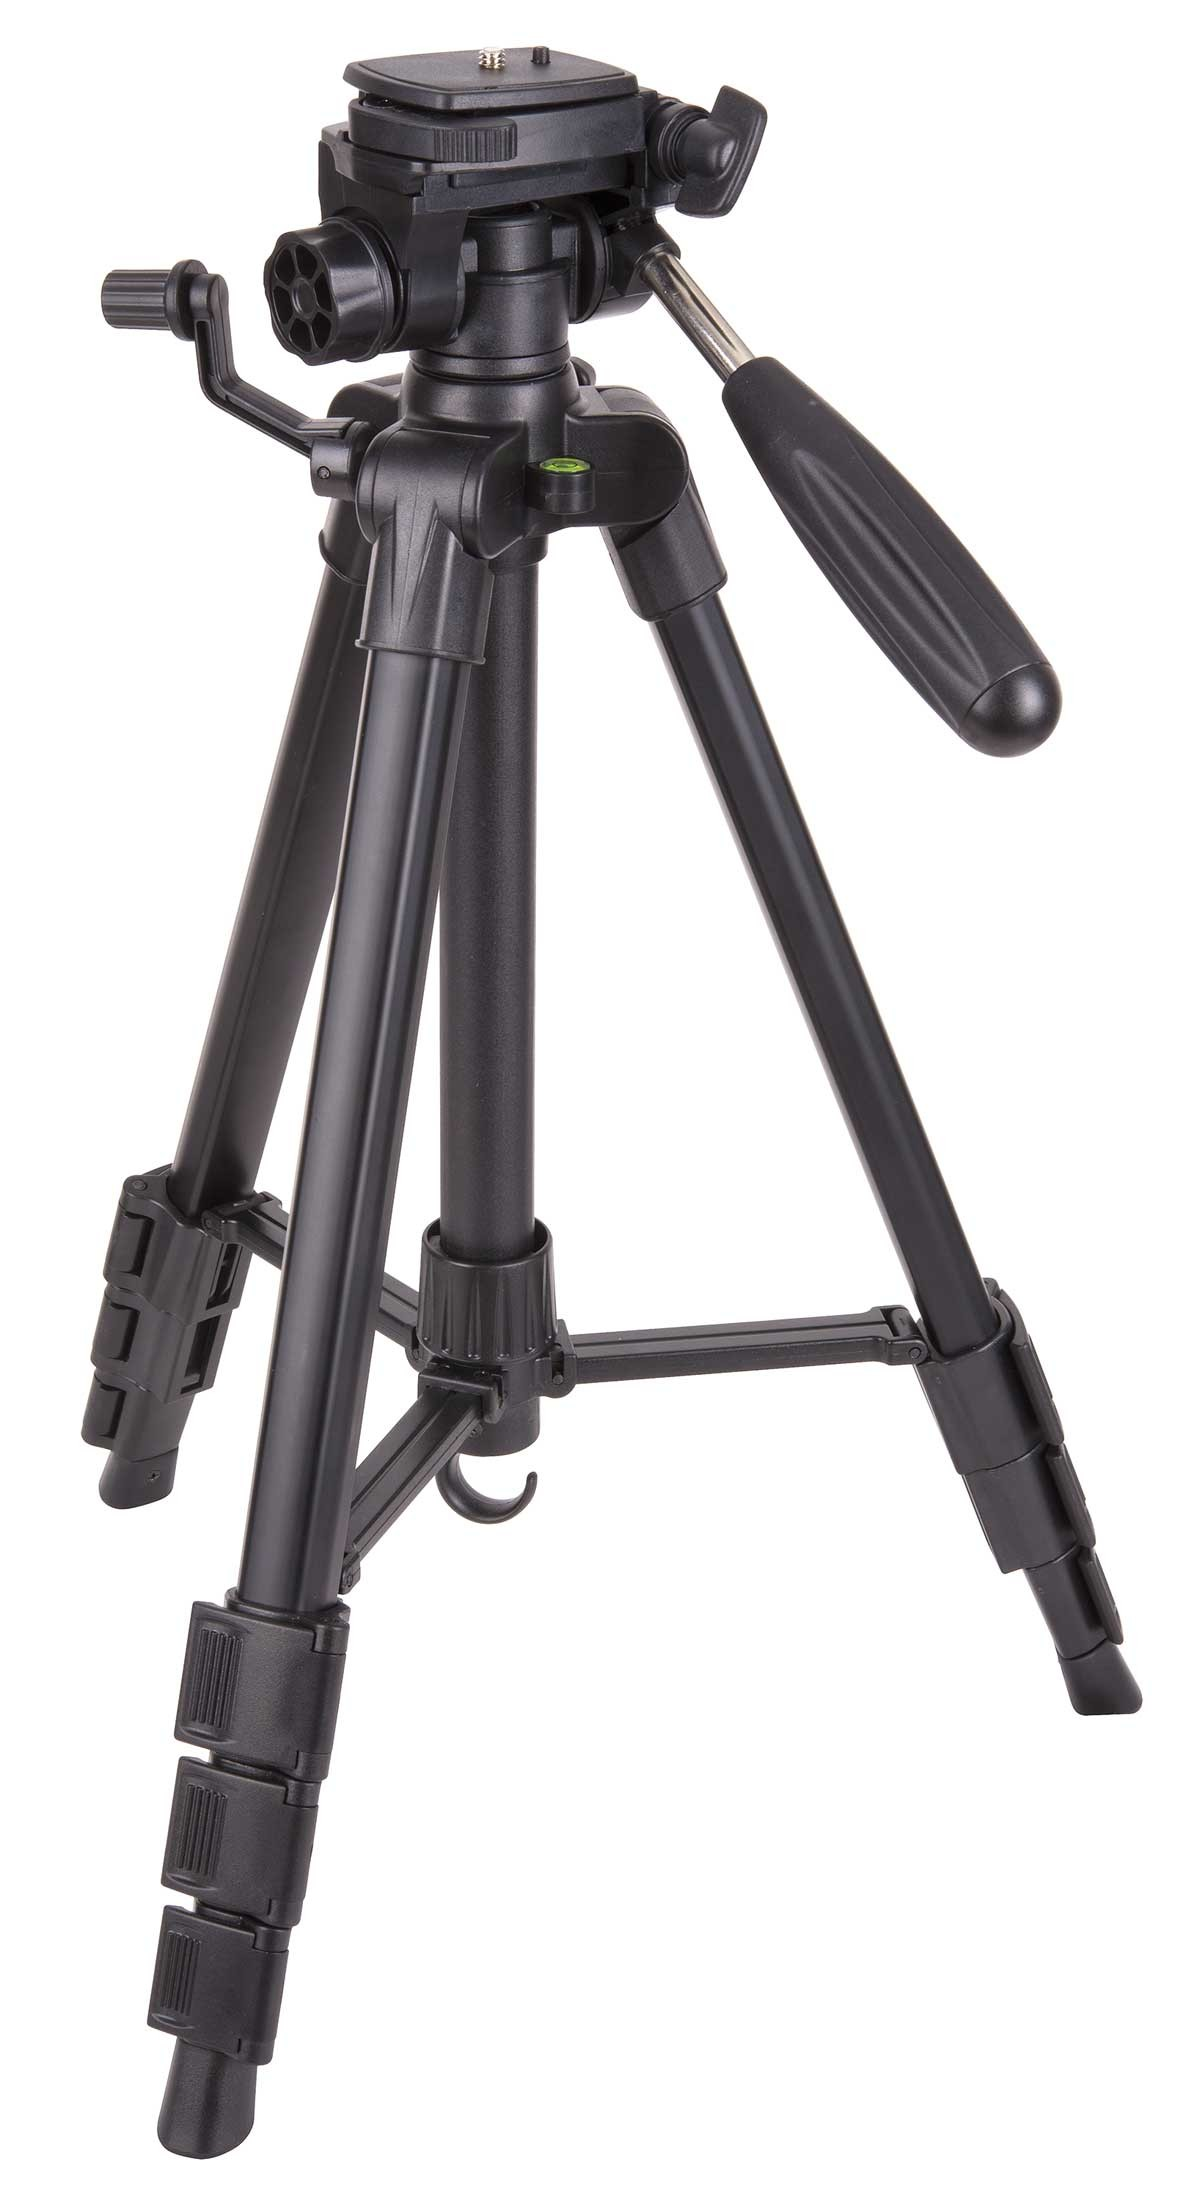 REED R1500 Lightweight Tripod with Instrument Adapter-REED R1500 6